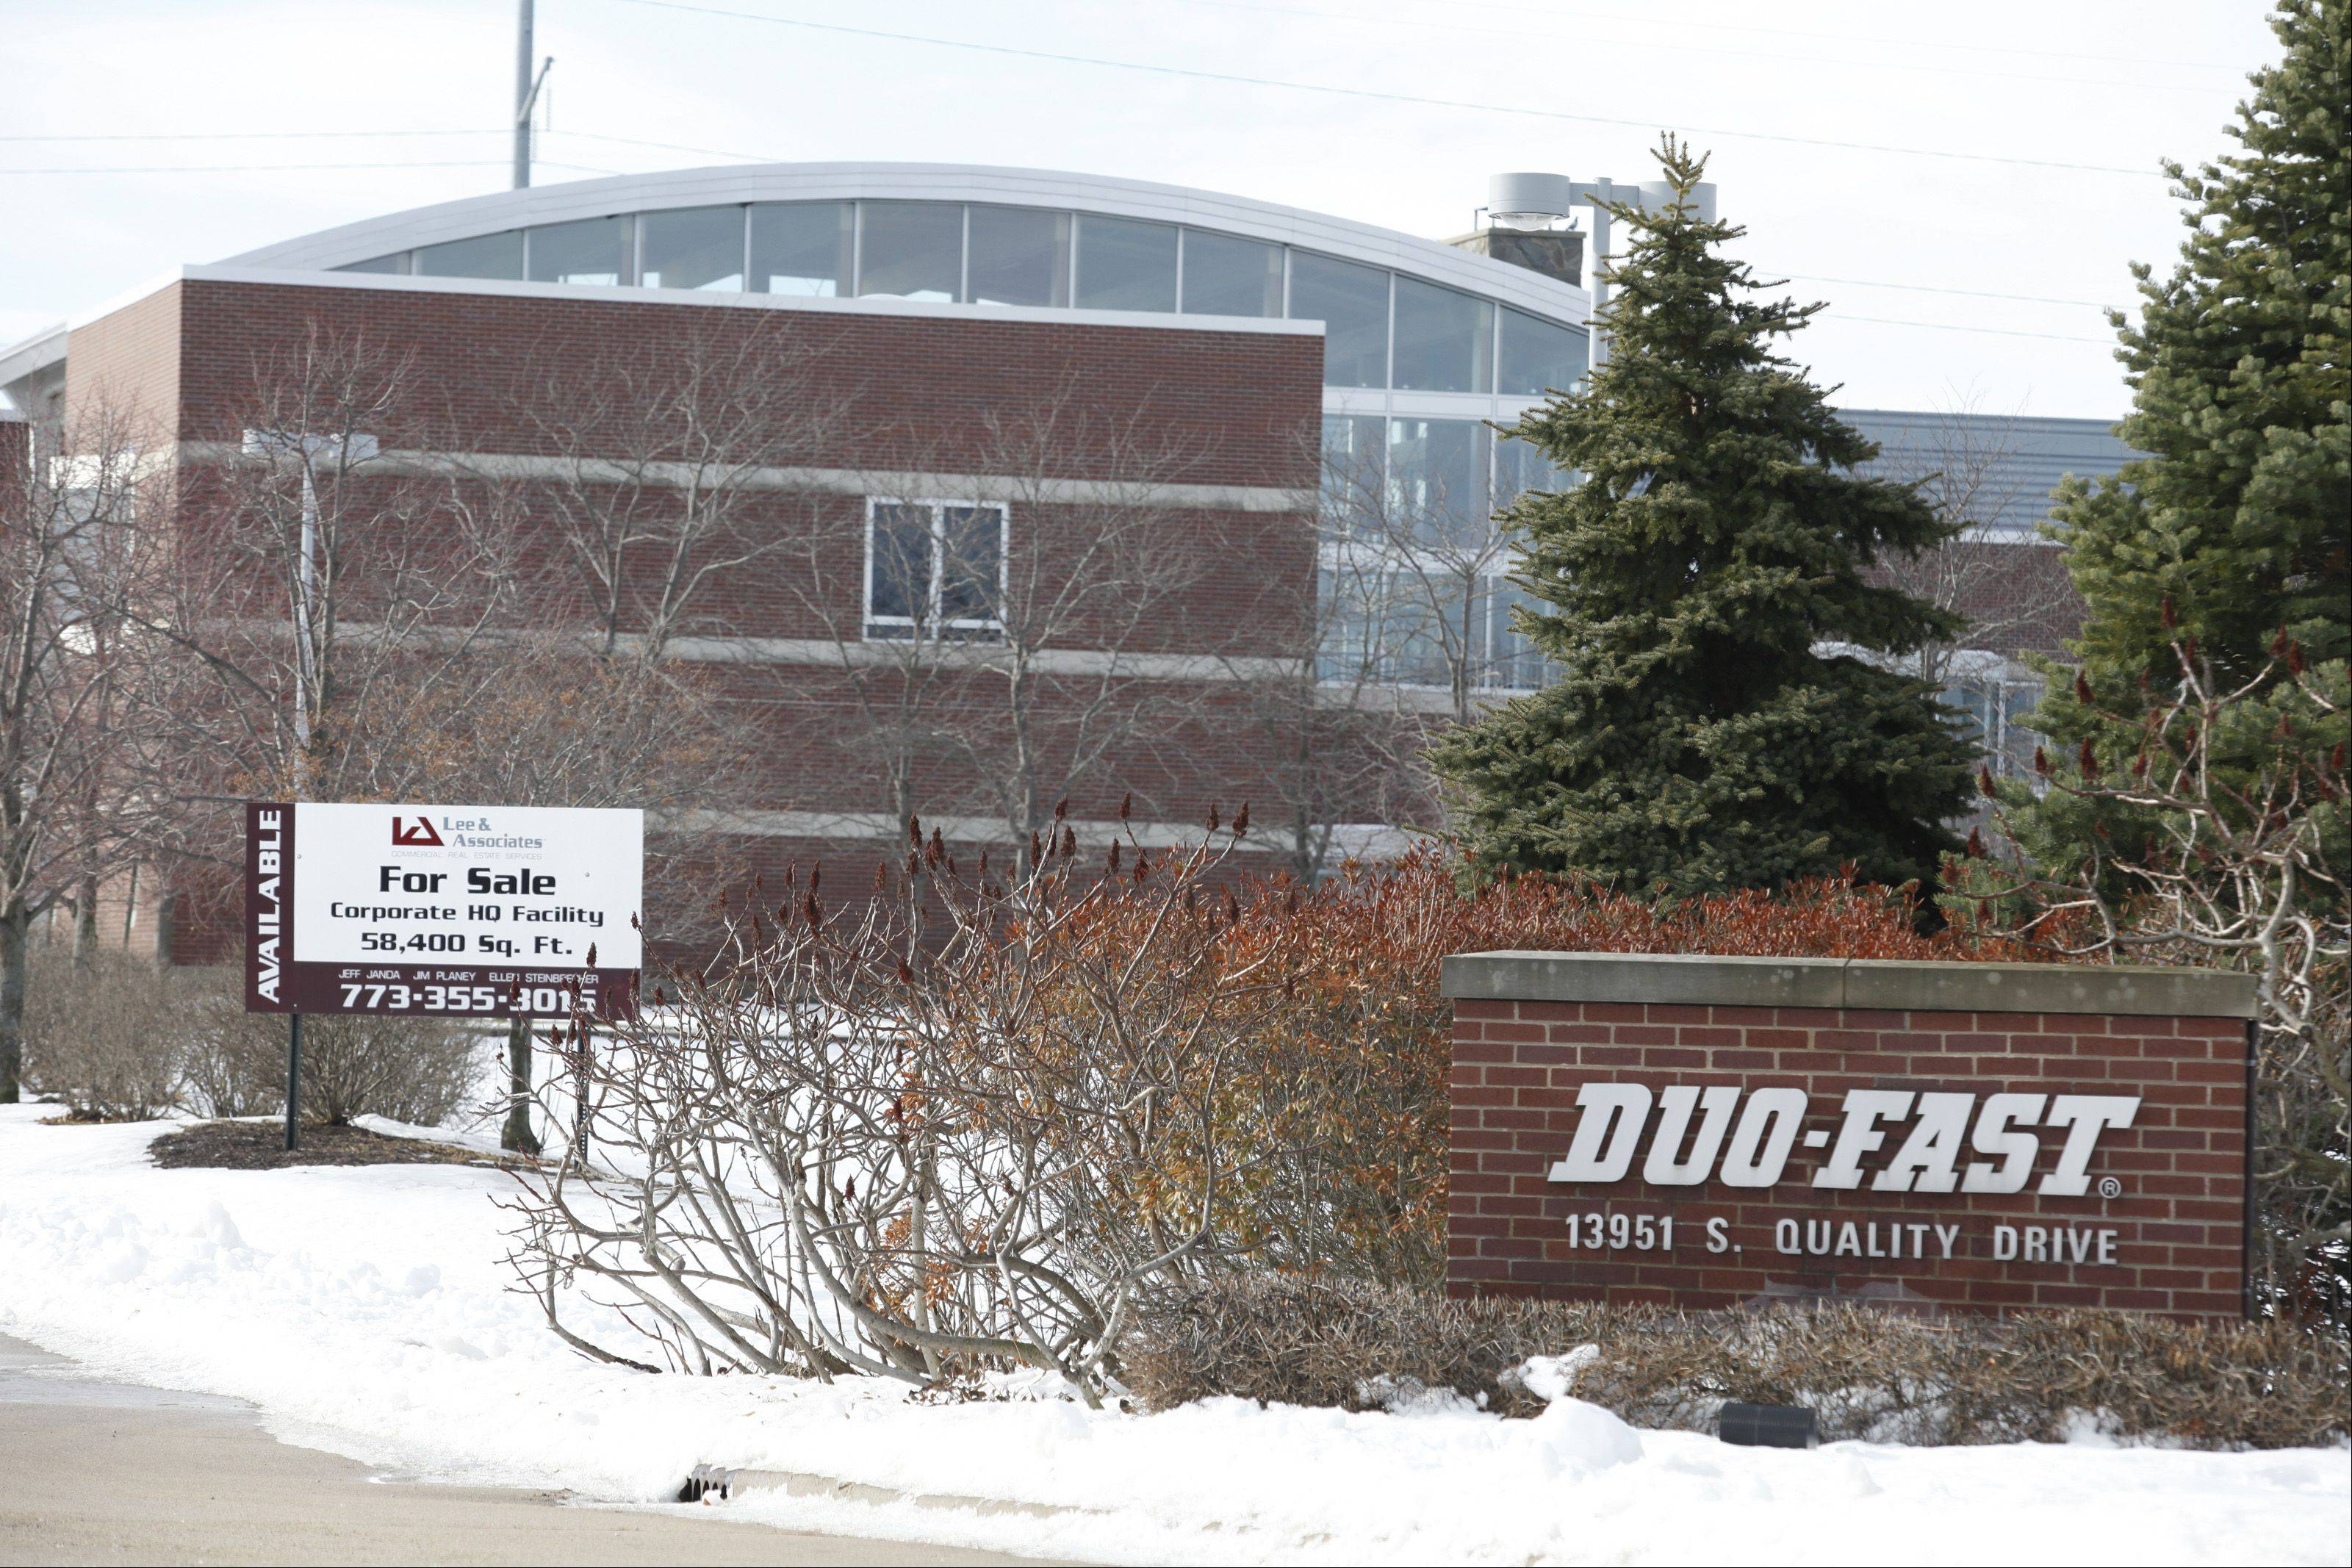 There are multiple locations available in the Huntley Corporate Park along Jim Dahmer Drive.